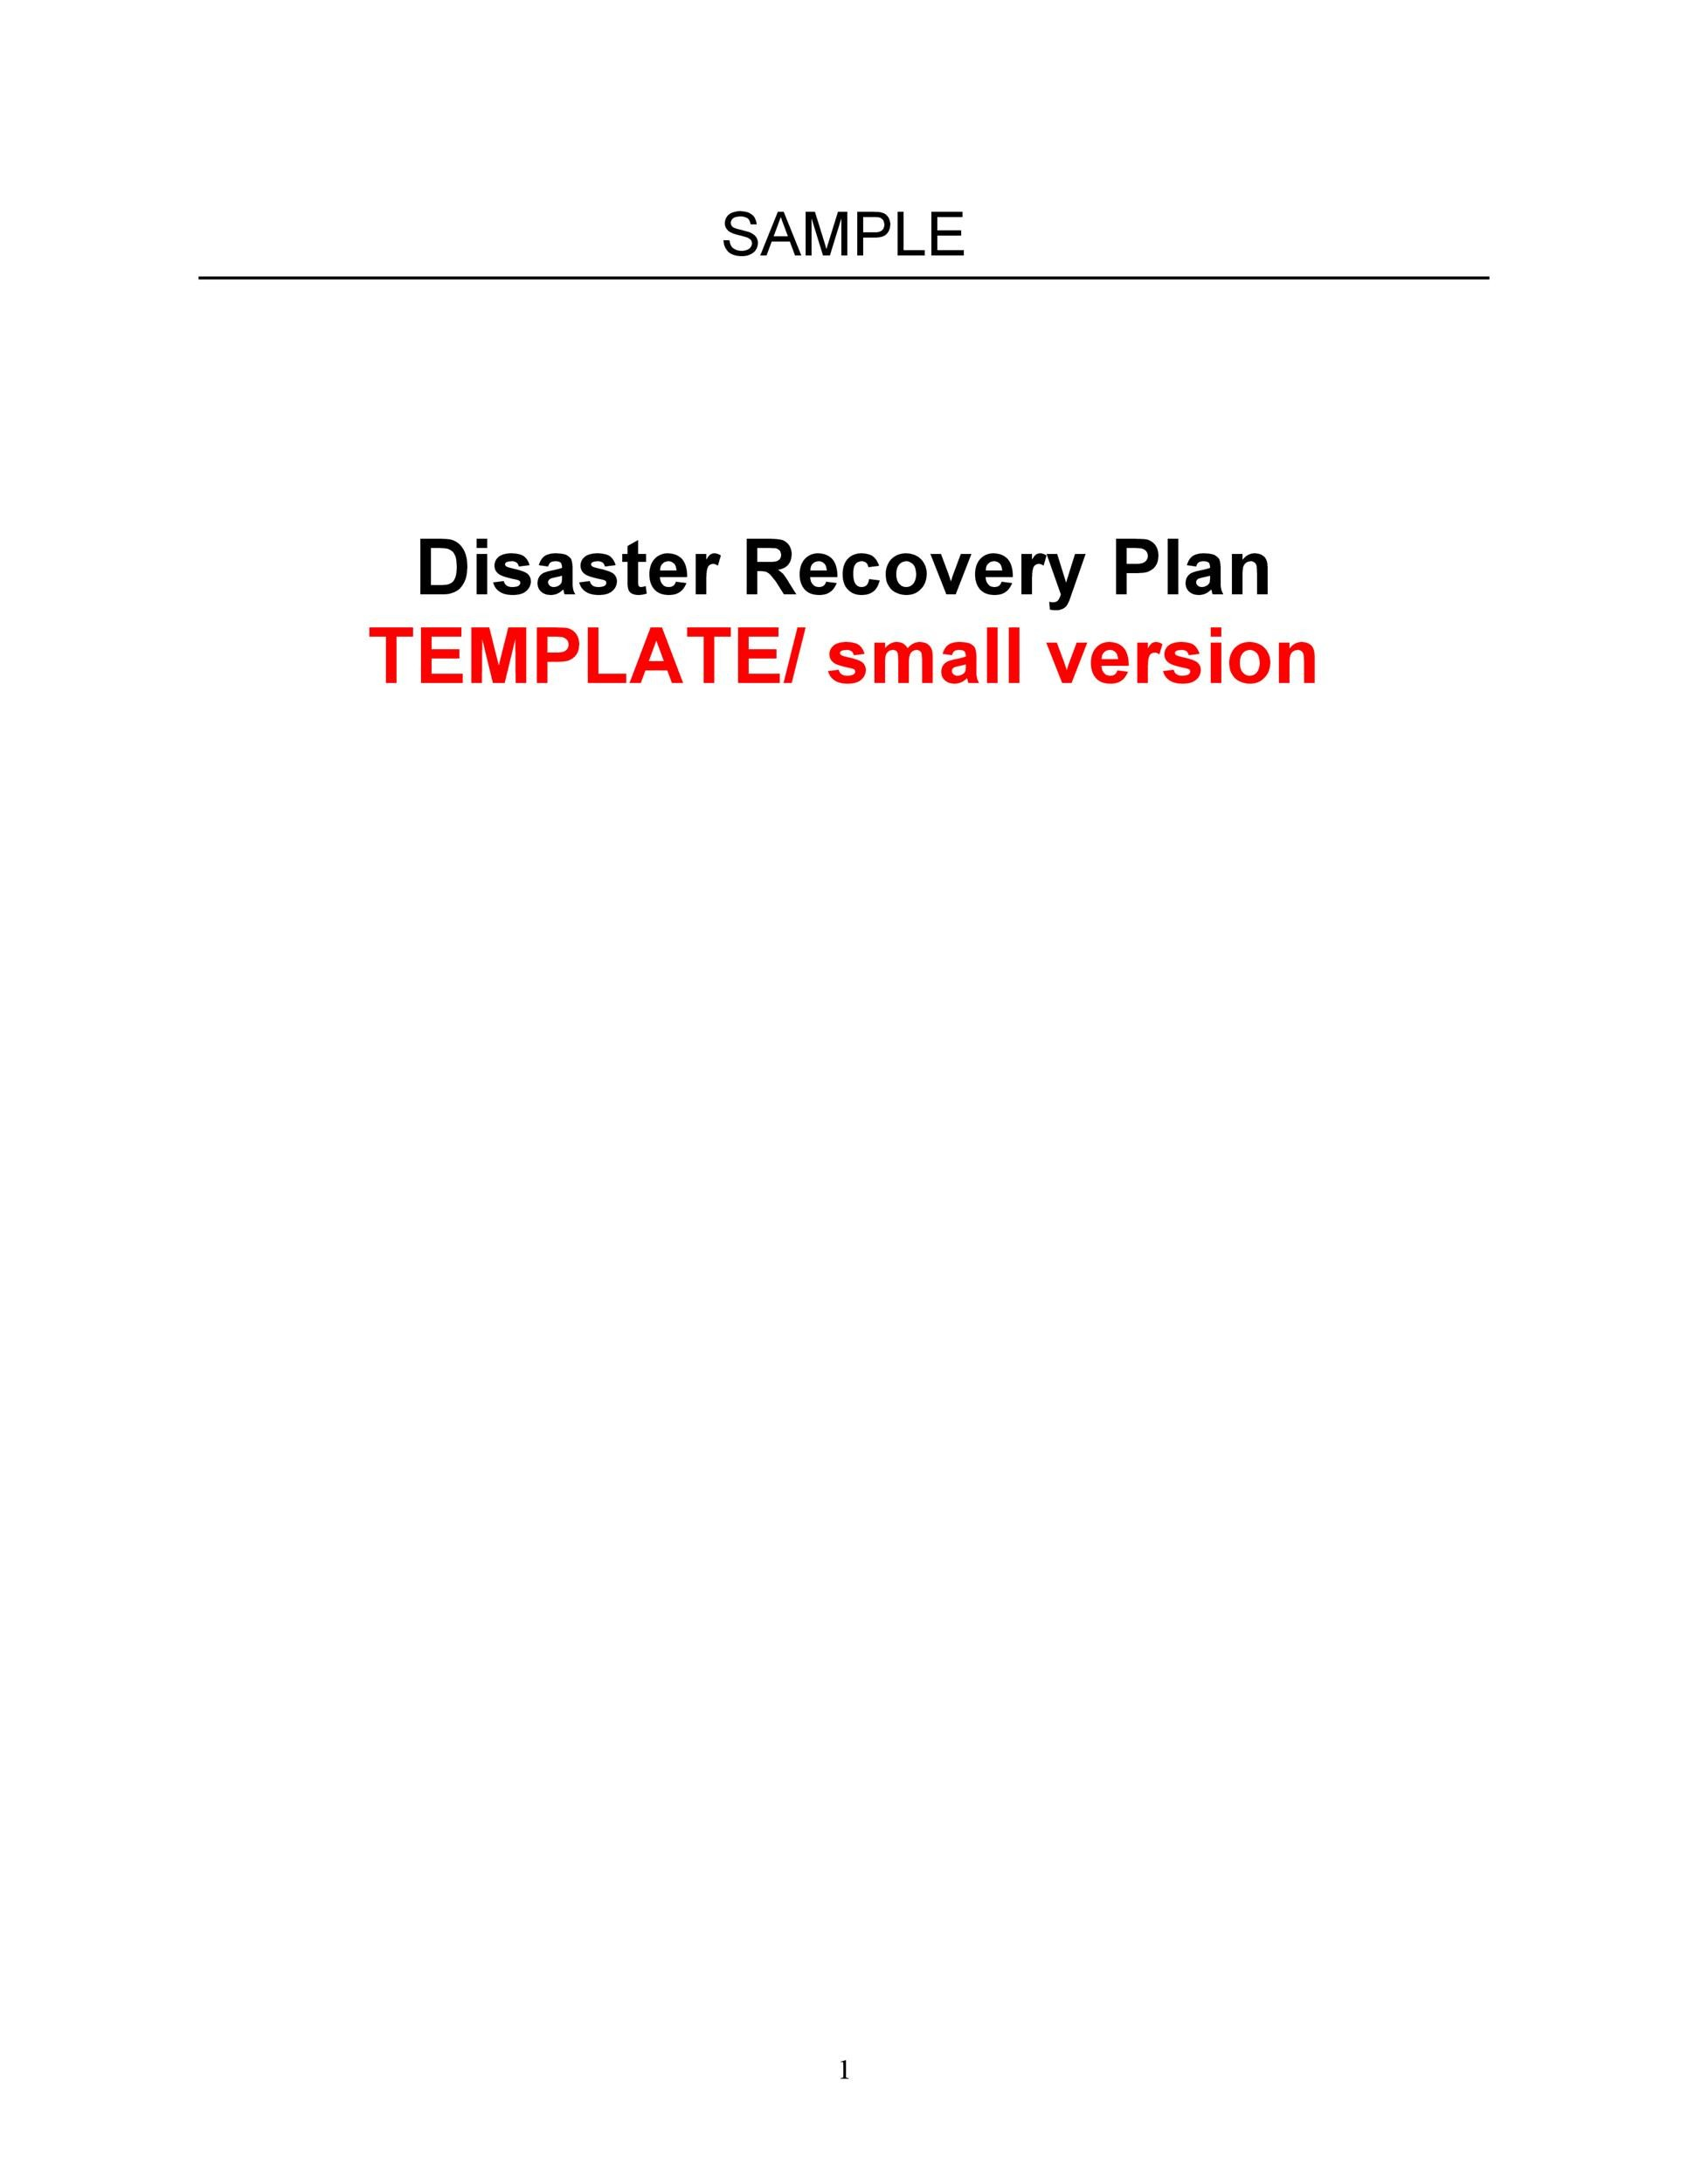 Effective Disaster Recovery Plan Templates DRP Template Lab - Sample it disaster recovery plan template